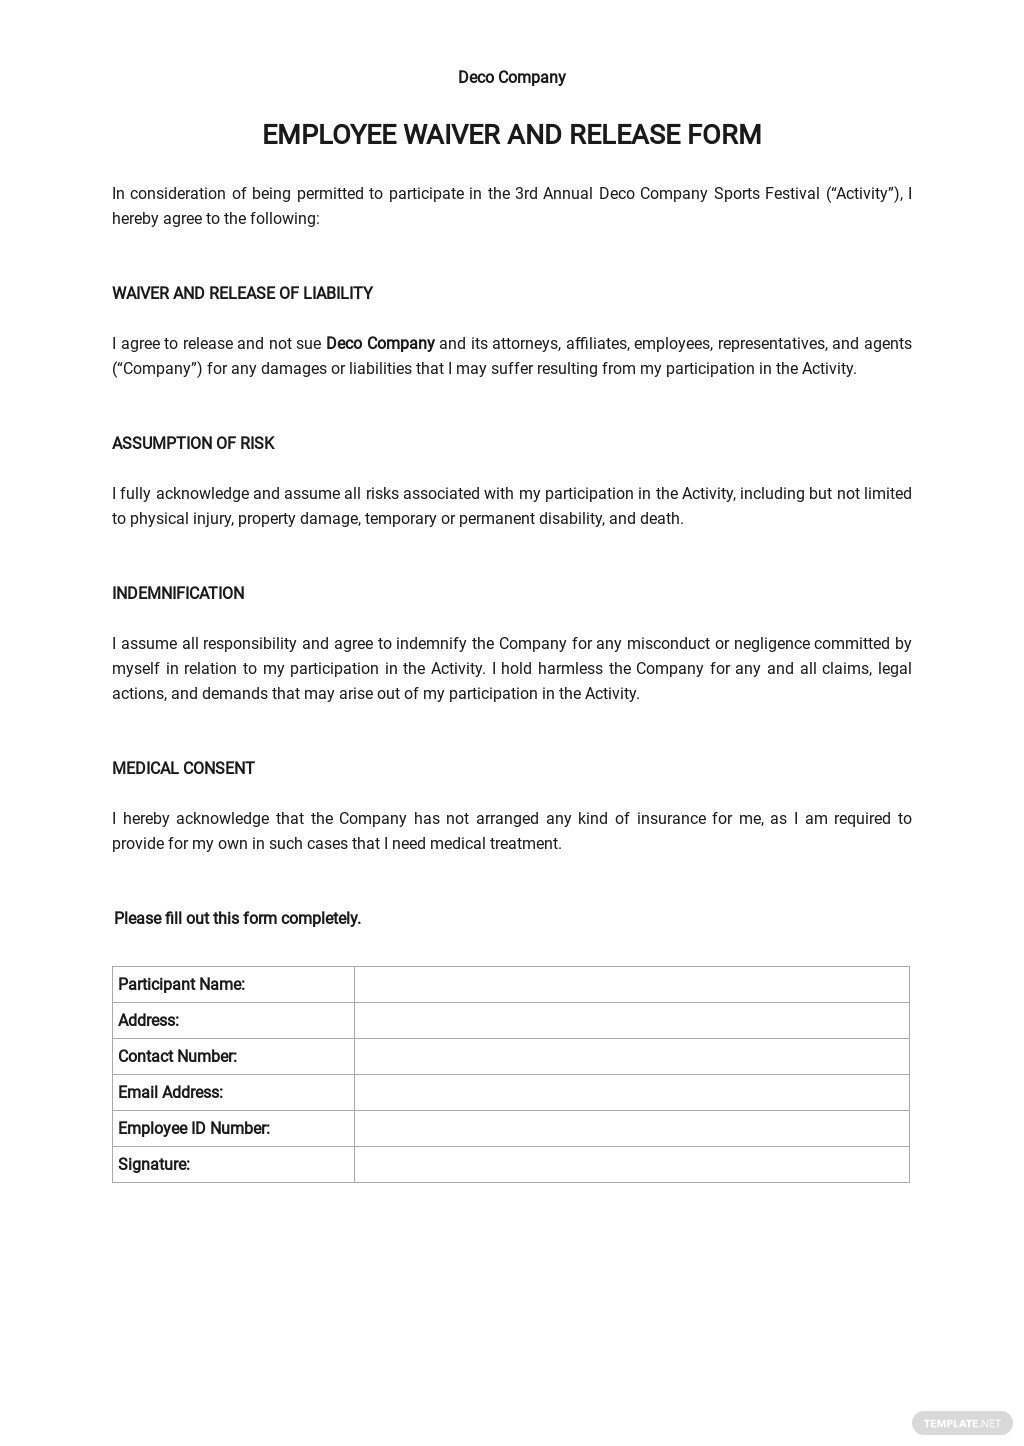 Employee Waiver and Release Form Template